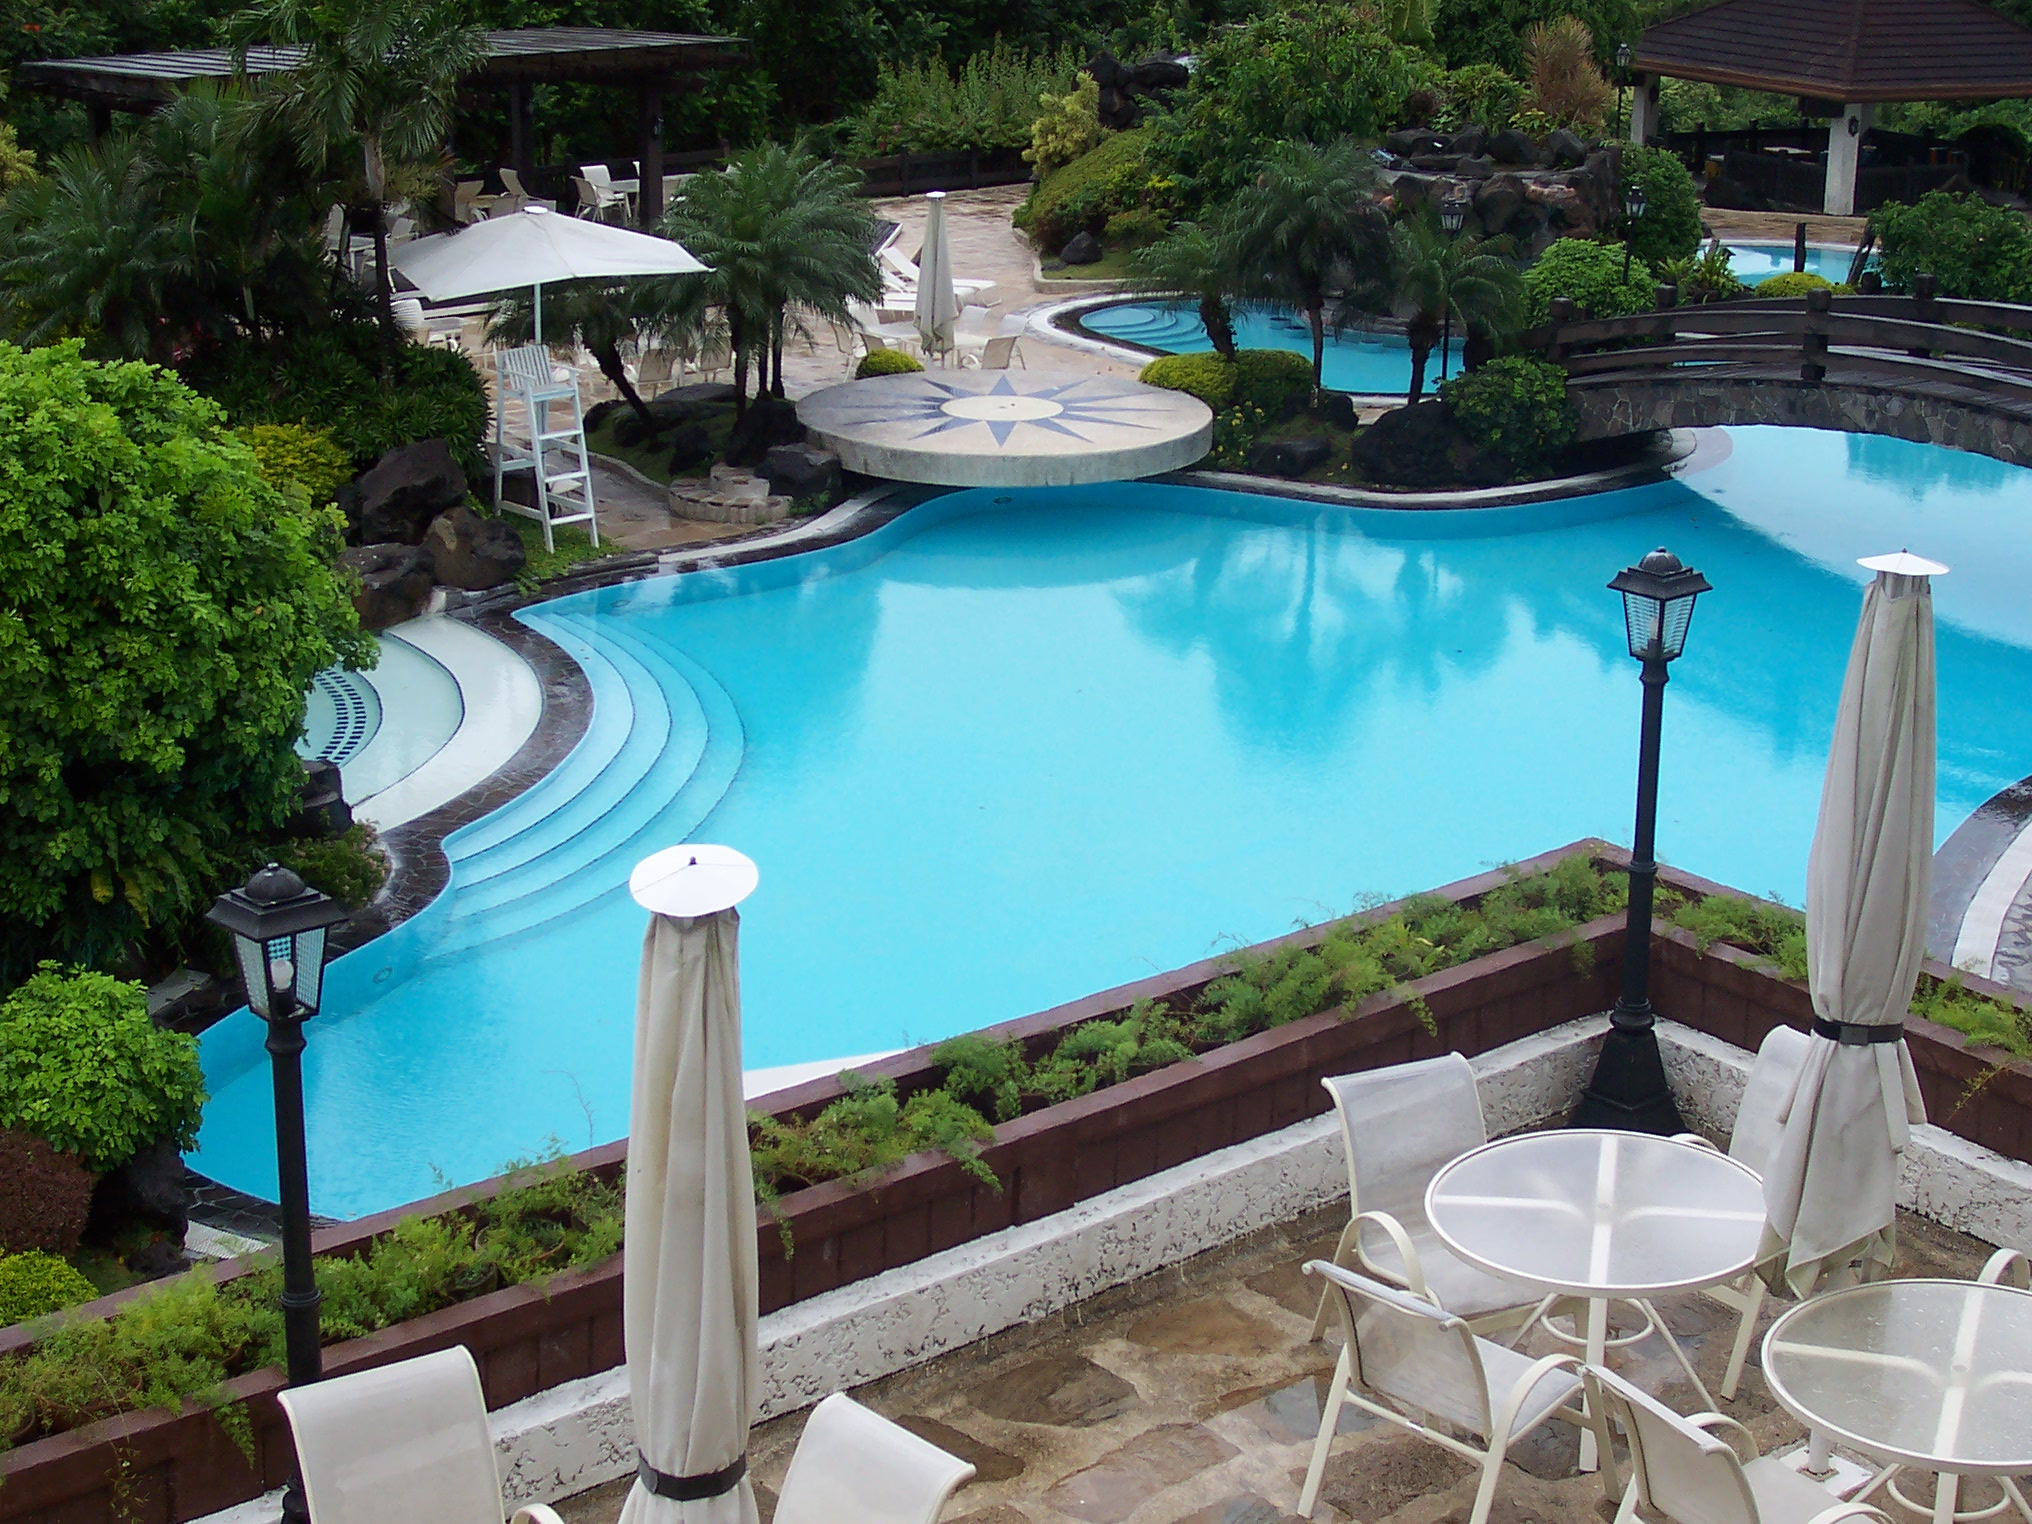 File:Tagaytay Highlands pool area.jpg - Wikimedia Commons